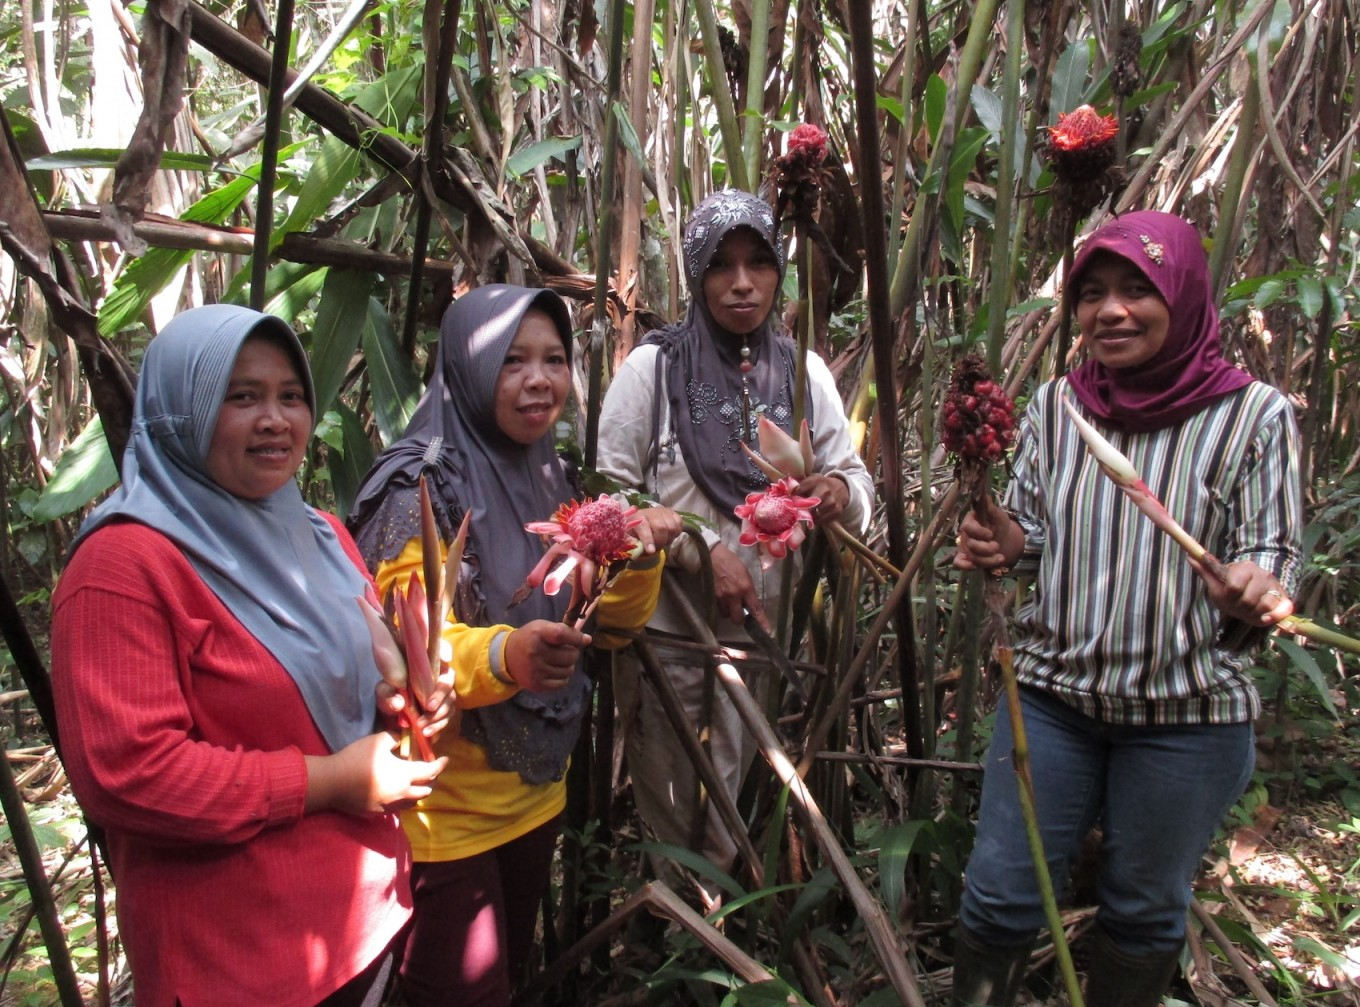 Women in Sumatra help preserve World Heritage forest to build food security